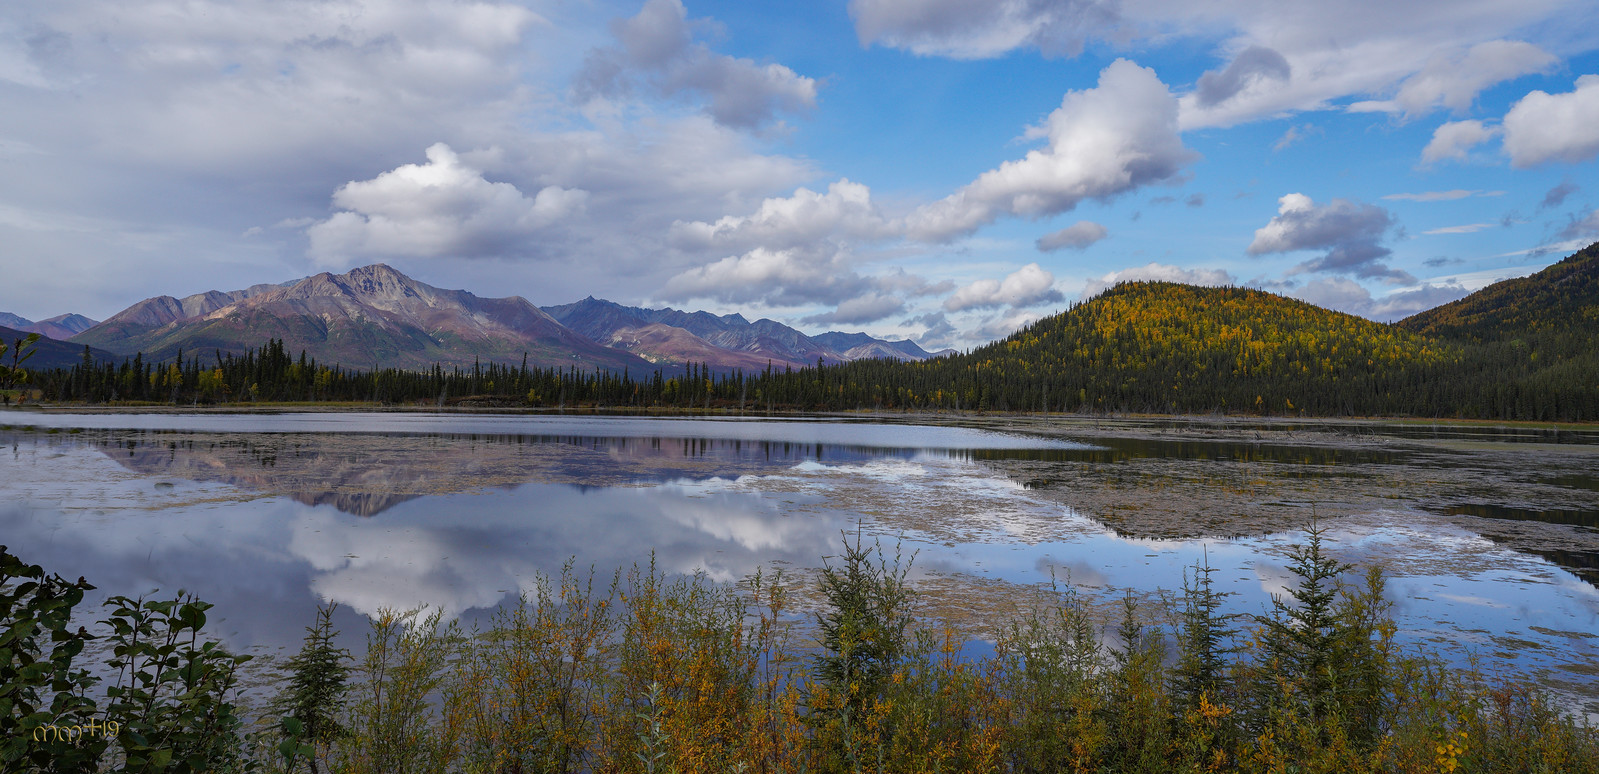 Yukon Canada Scene Nature Landscapes In Photography On The Net Forums